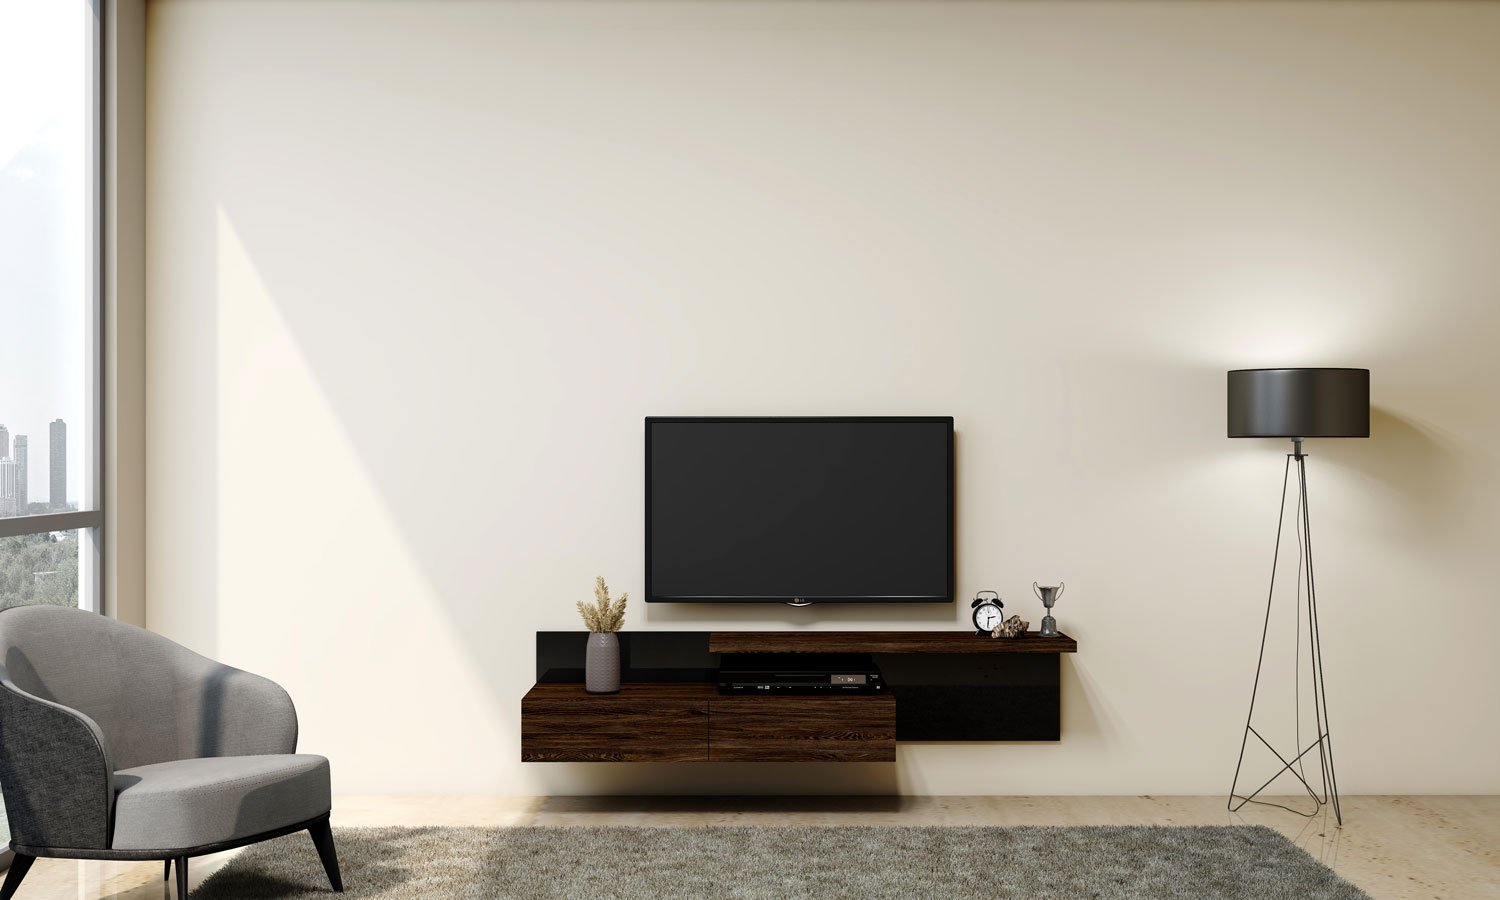 TV unit with Storage in Drawers, Shelf in Bronze Expressive Oak finish and Back Panel in Shadow Black